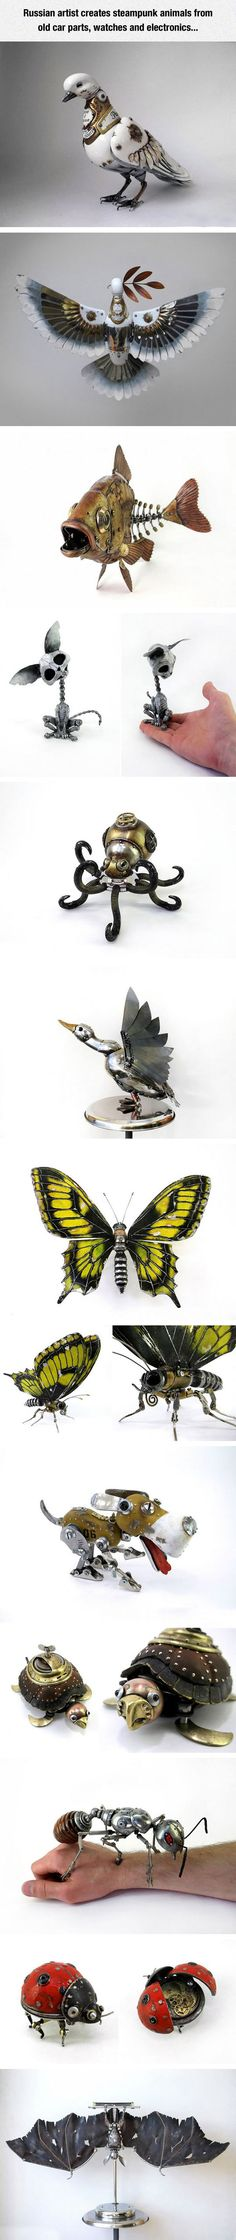 Russian artist Igor Verniy makes badass animals From Old Car Parts. Love it!!